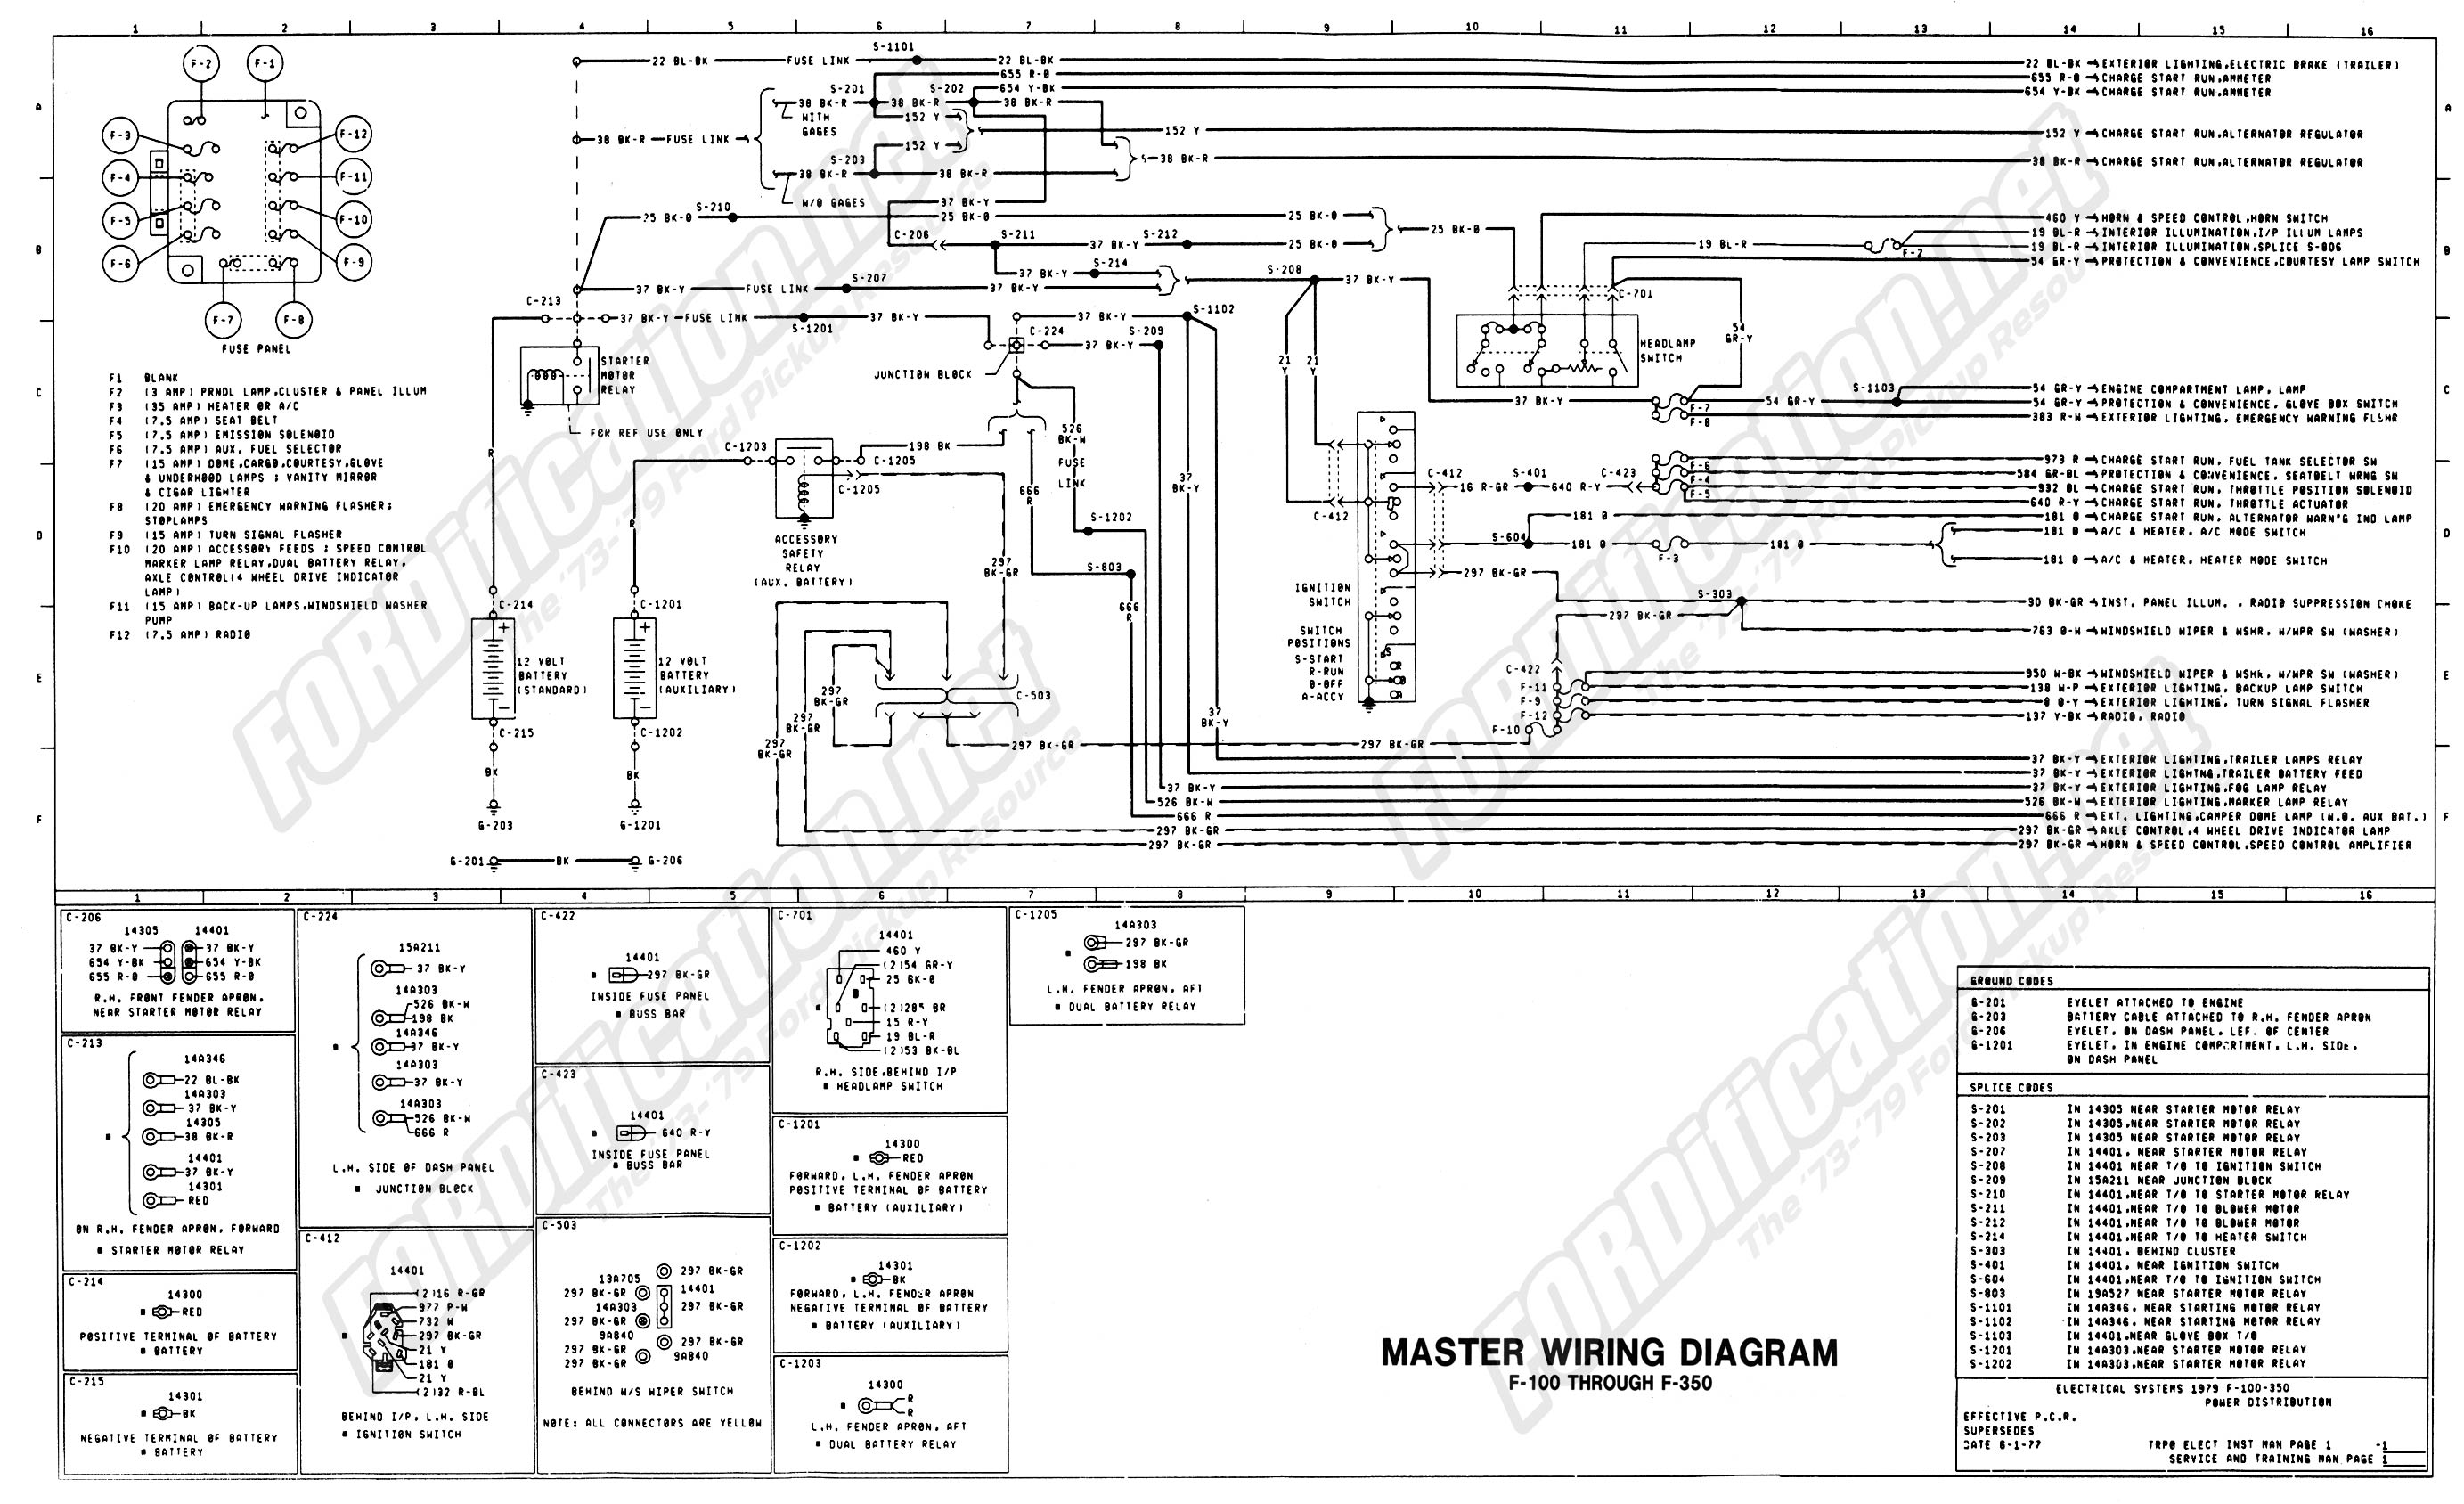 wiring_79master_1of9 1973 1979 ford truck wiring diagrams & schematics fordification net Ford Electrical Wiring Diagrams at virtualis.co